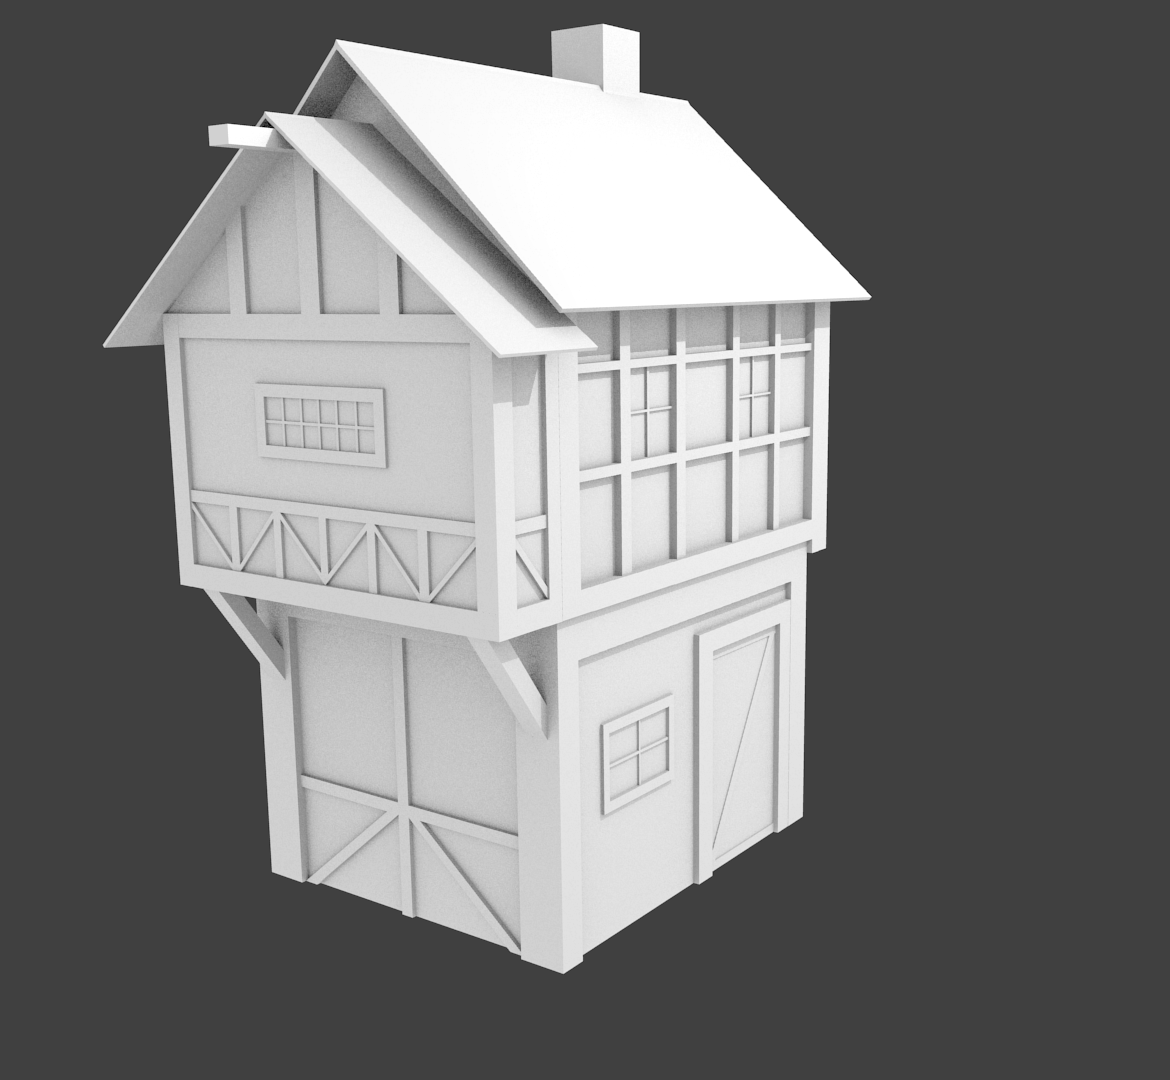 medieval house 3D Model .obj .3ds .blend - CGTrader.com